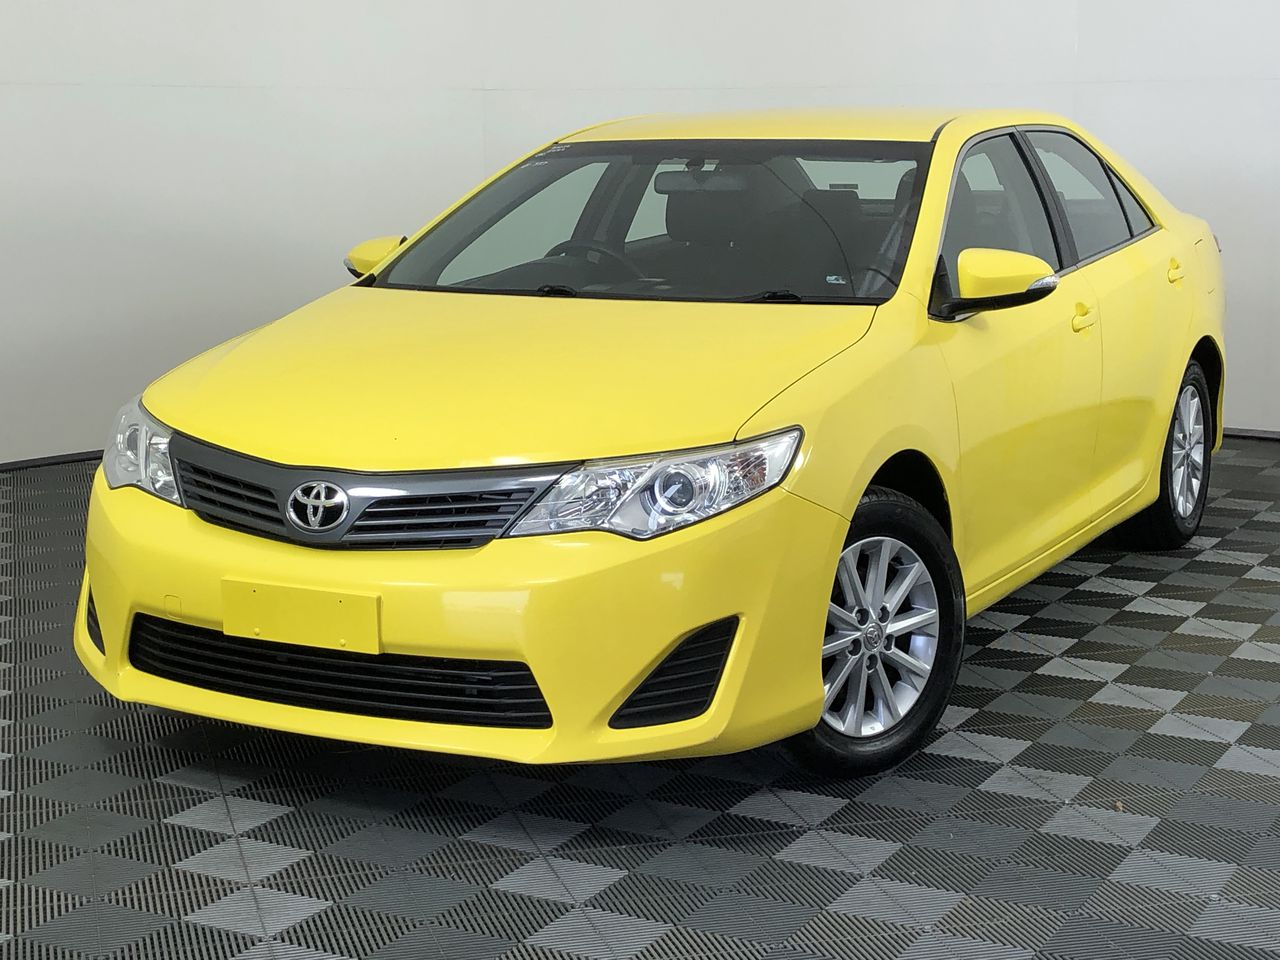 2013 Toyota Camry Altise ASV50R Automatic EX RACV